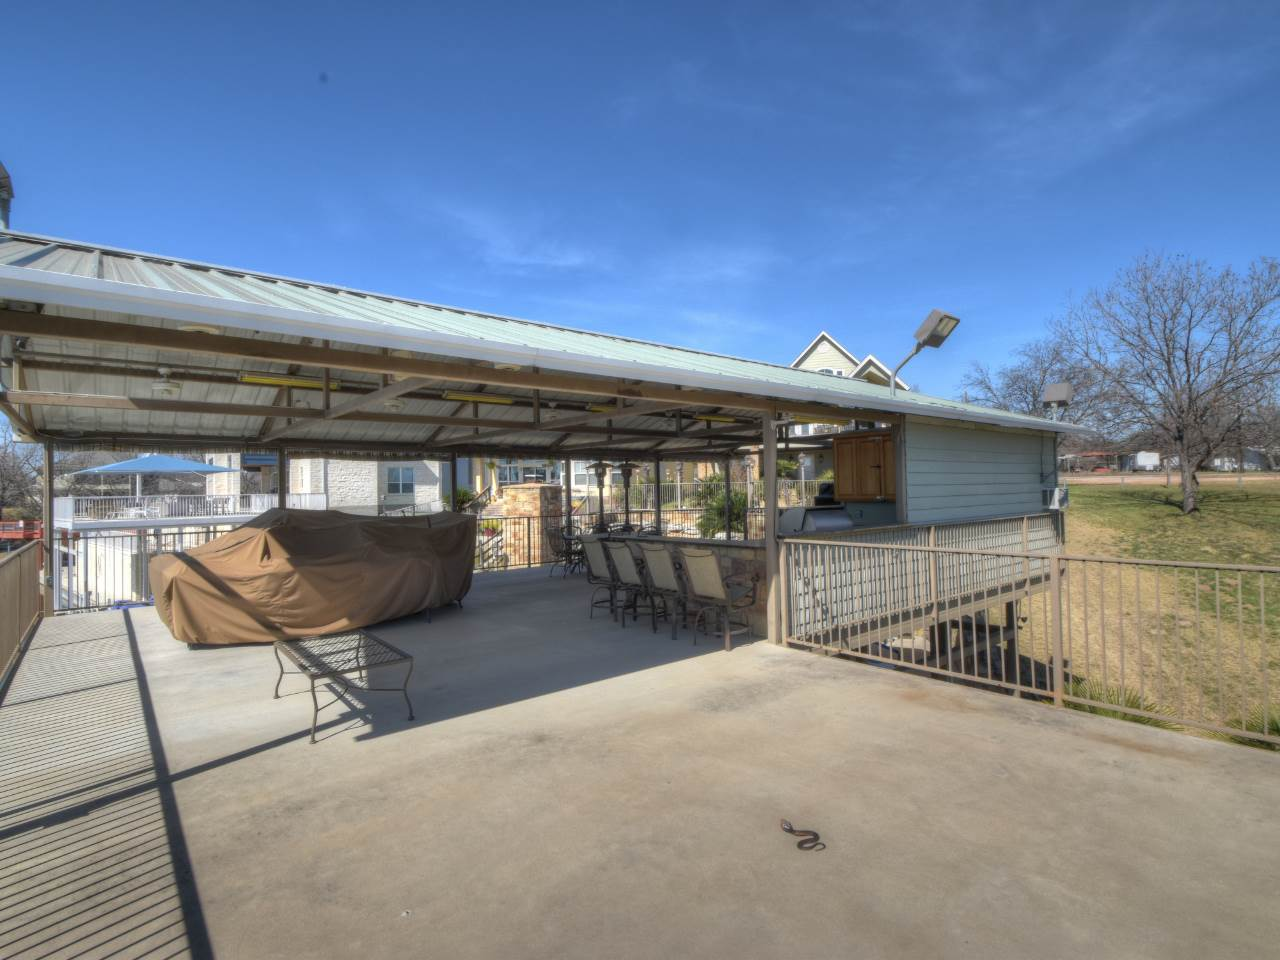 Additional photo for property listing at 1530 CIMARRON TRAIL  Kingsland, Texas 78639 United States